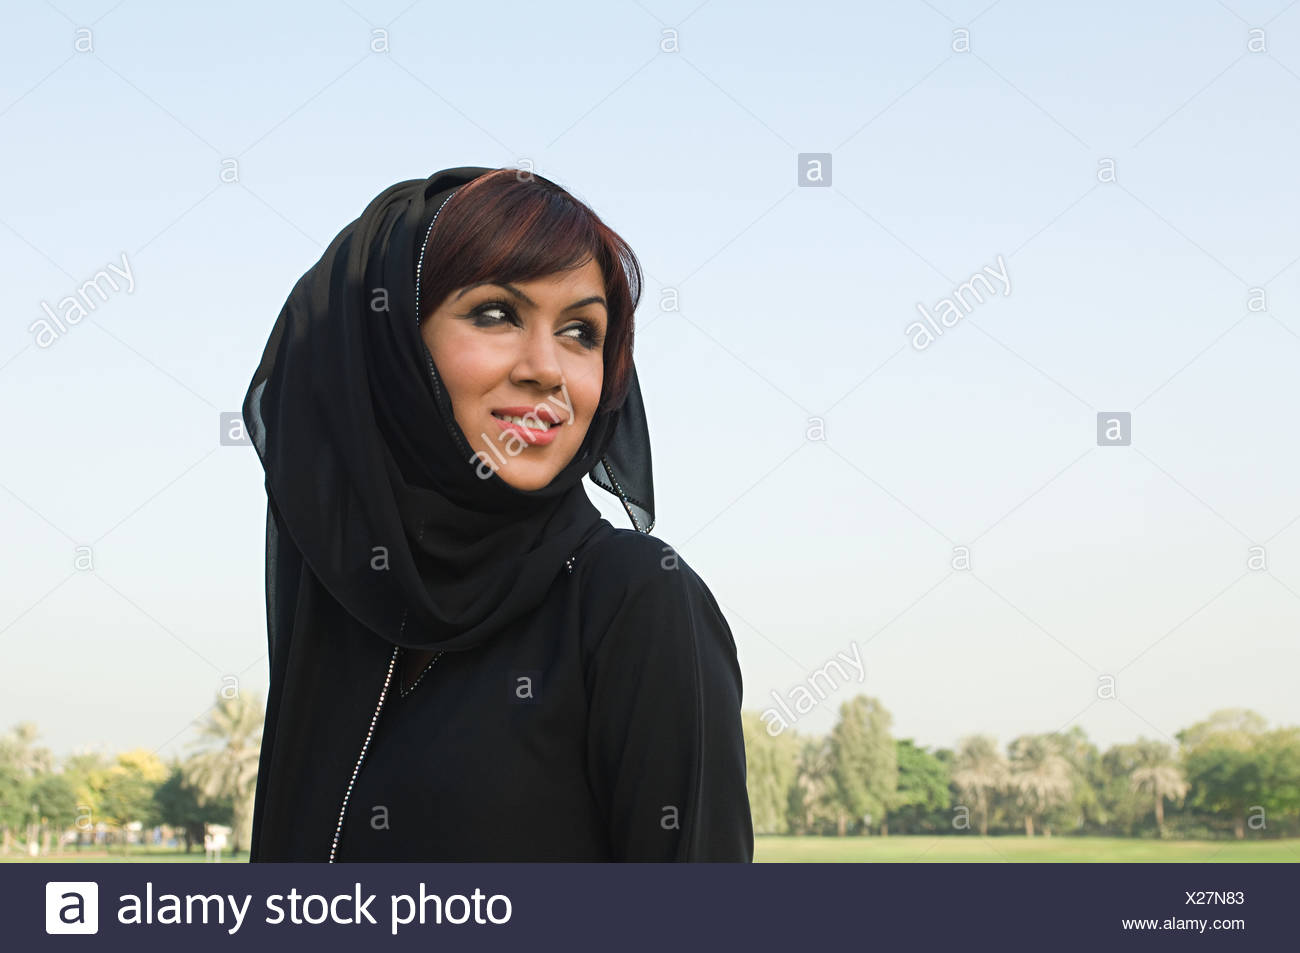 Portrait of a woman wearing a hijab - Stock Image